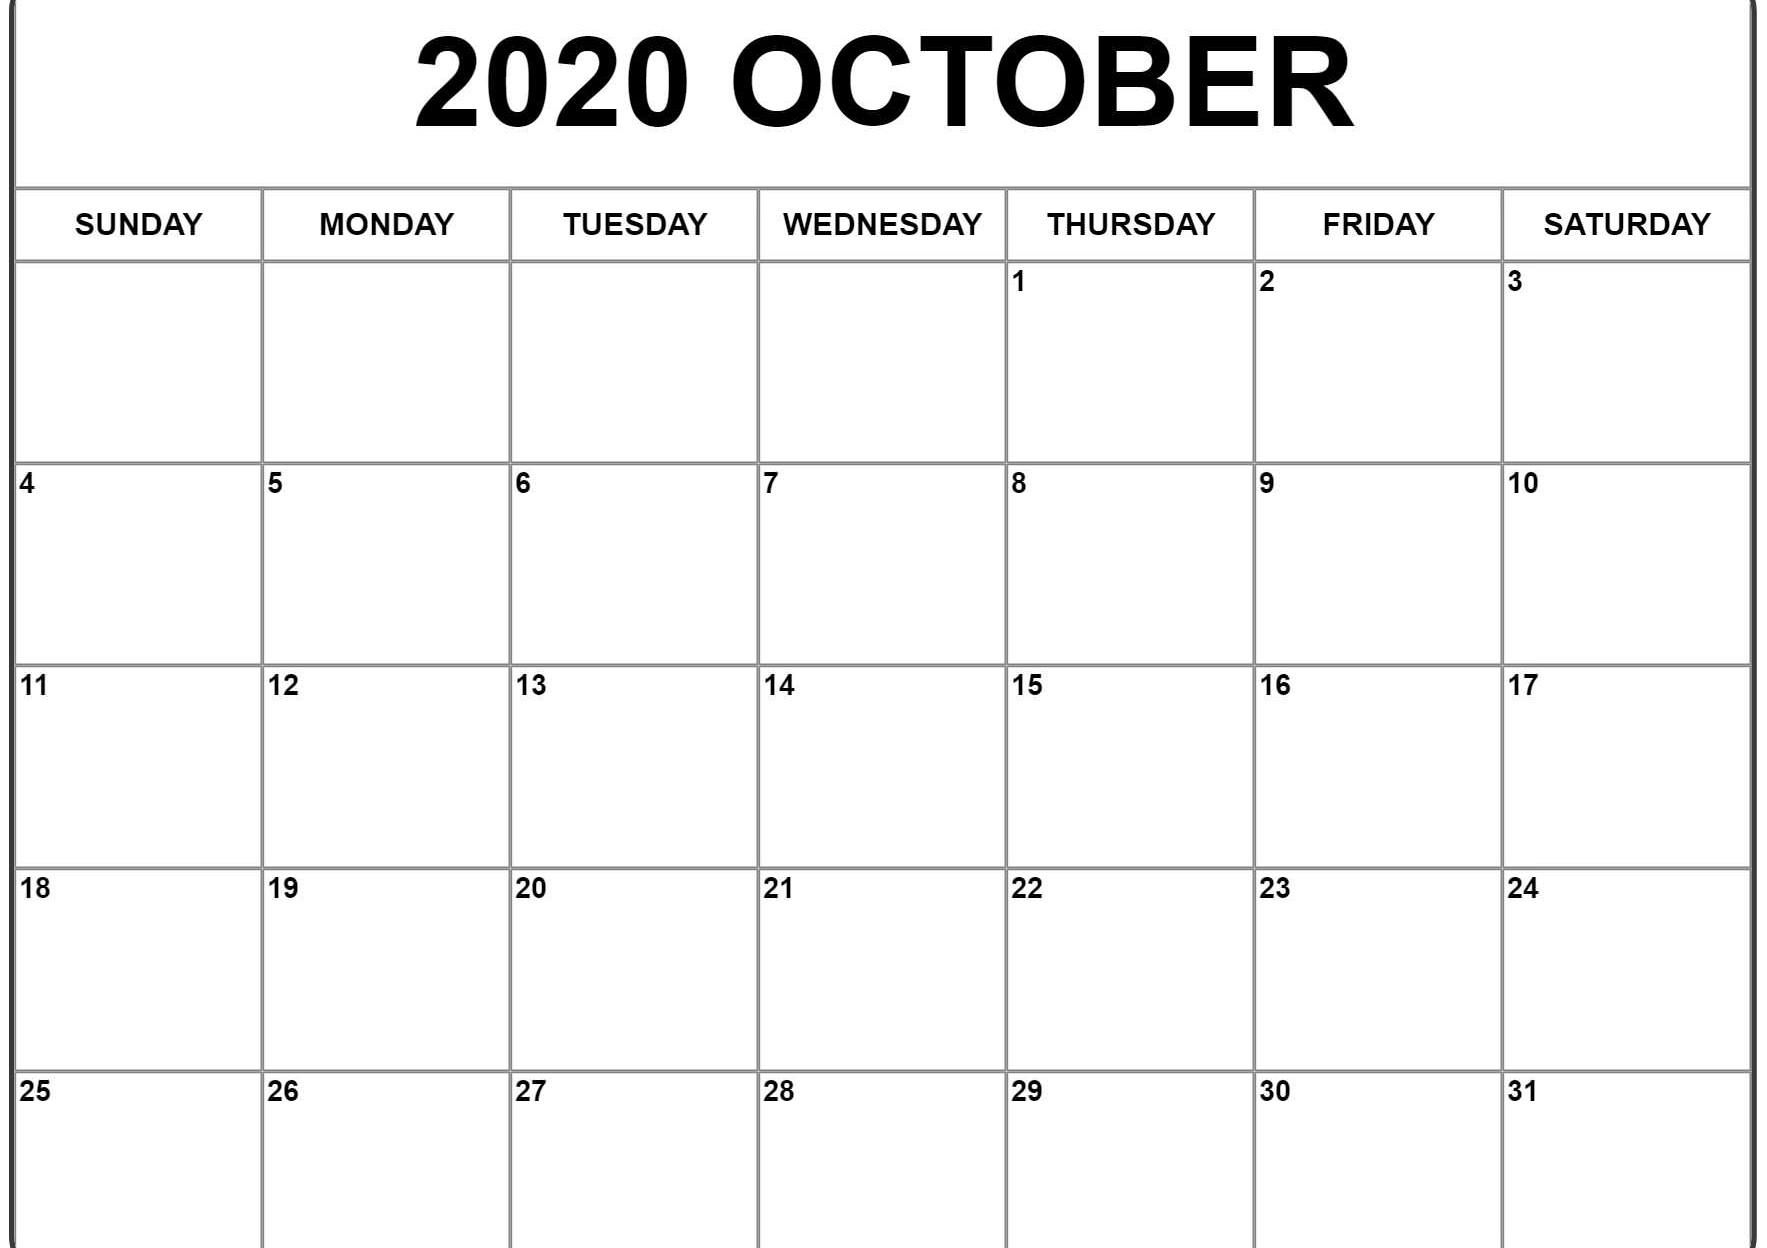 2020 Calendar Printable Pdf With Holidays - Google Search